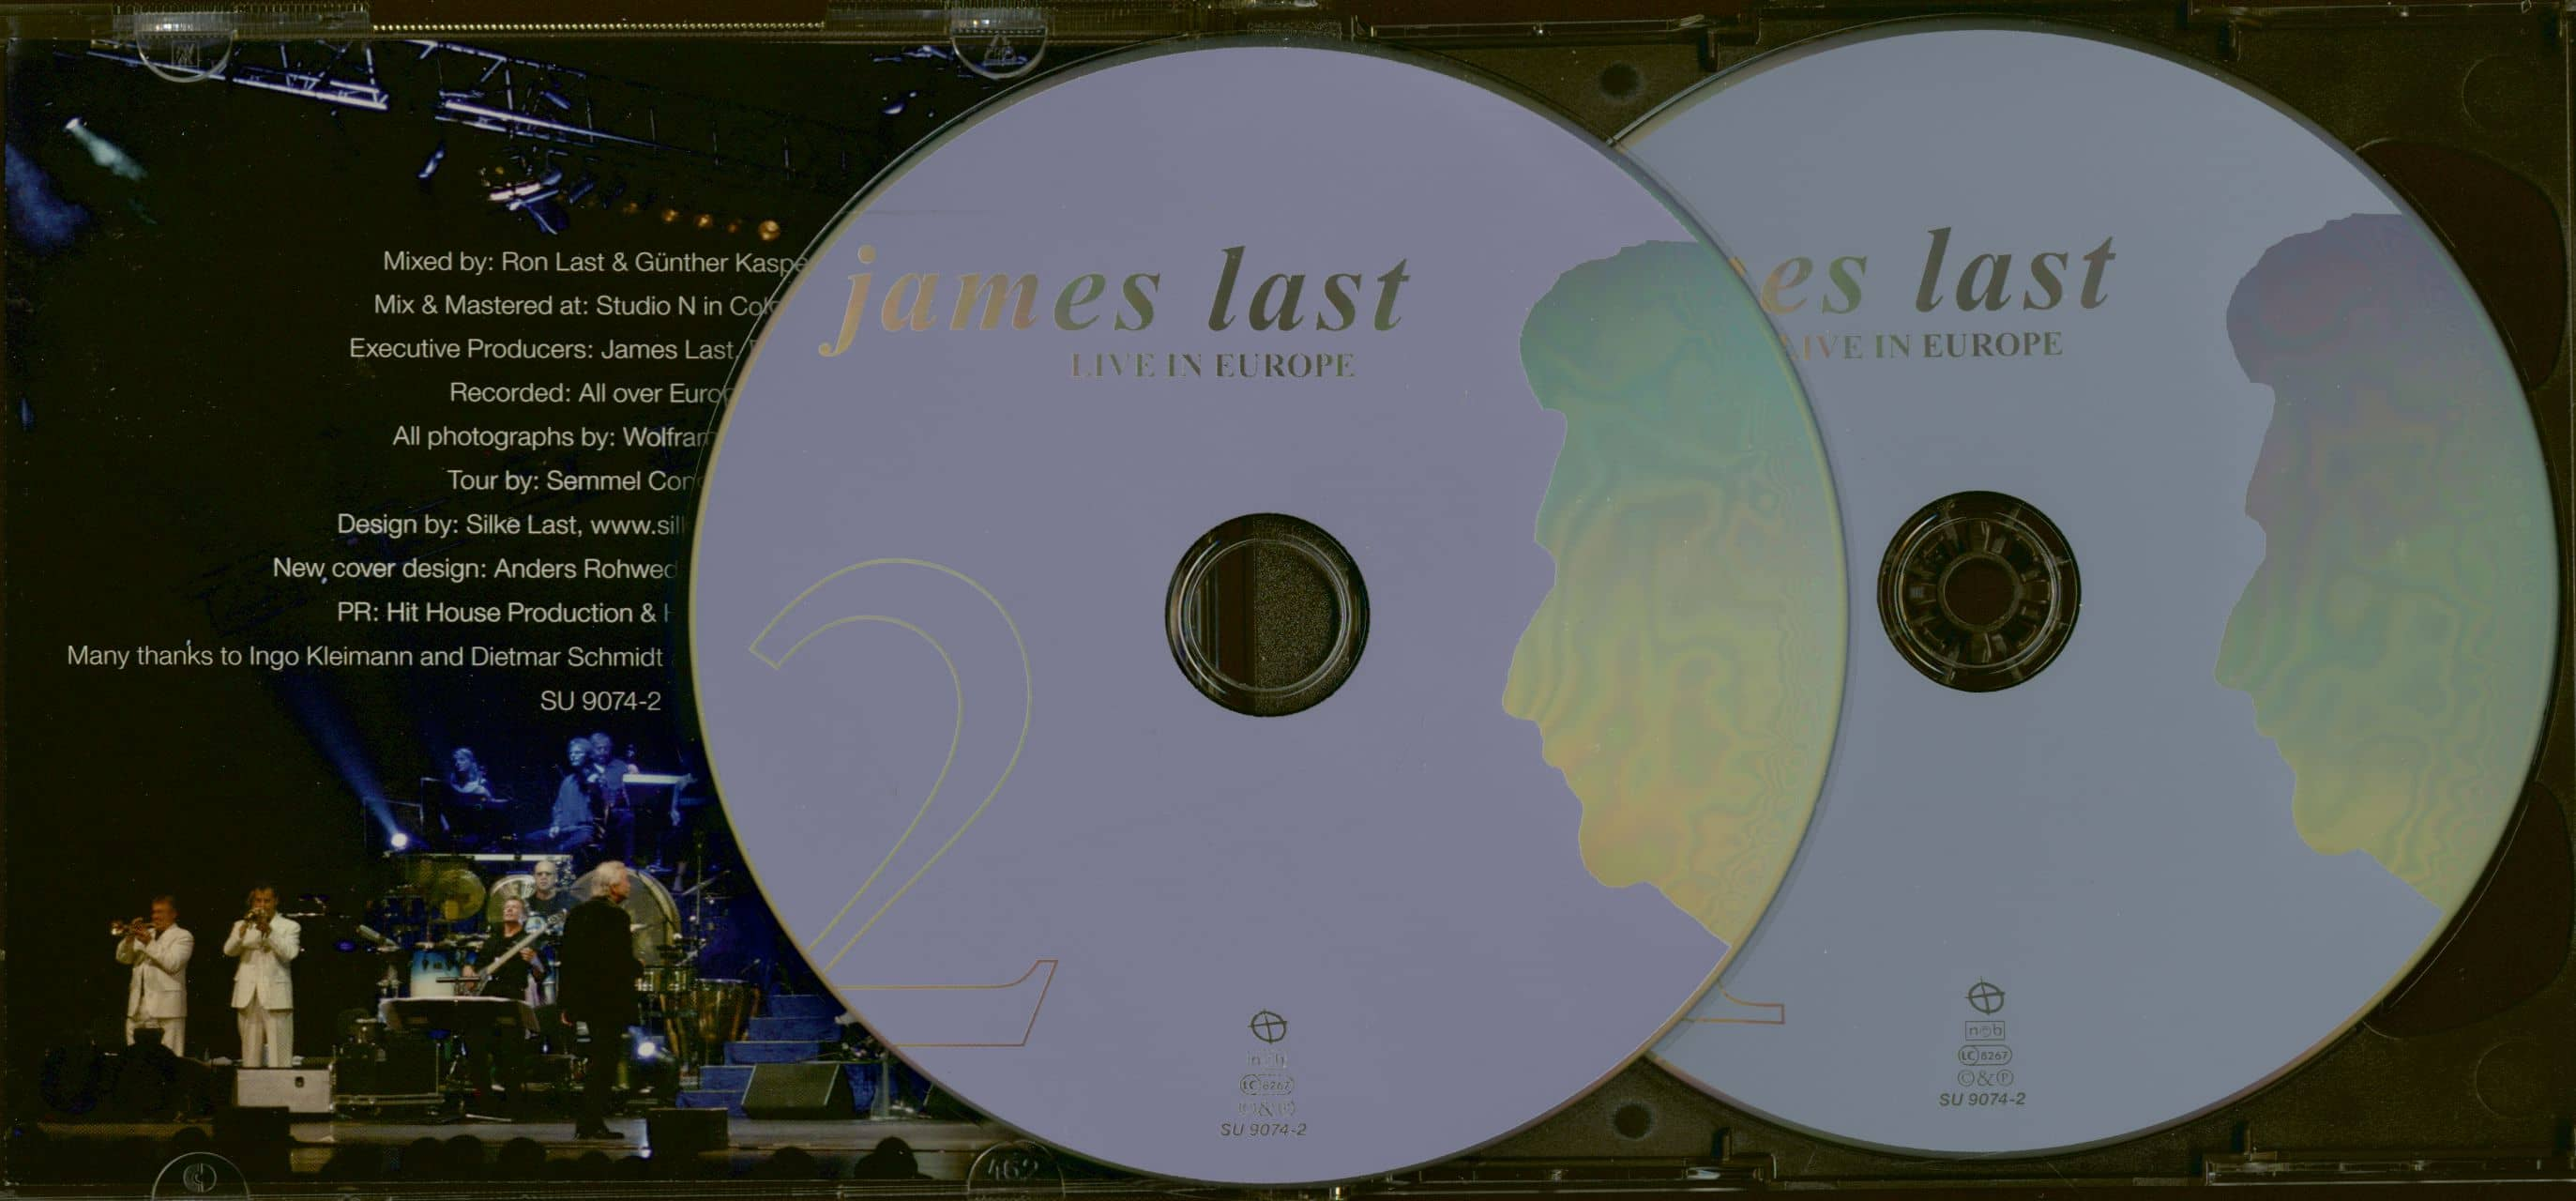 james last orange blossom special free mp3 download